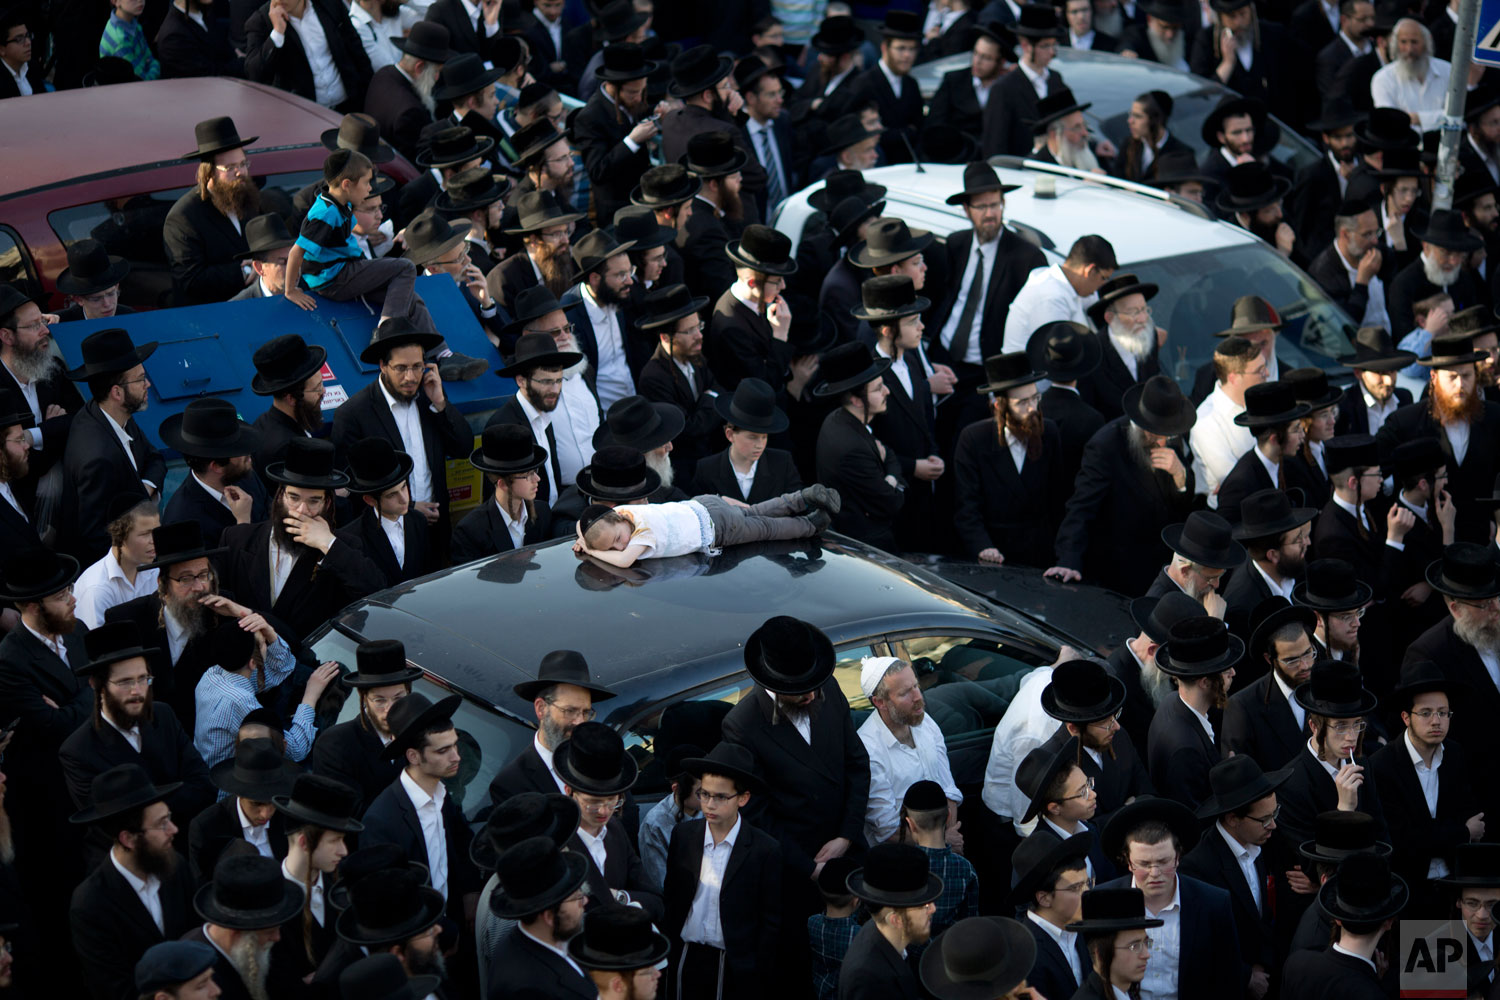 Ultra-Orthodox Jews watch the funeral procession of Rabbi of the Kaliv Hasidic dynasty and Holocaust survivor Menachem Mendel Taub during his funeral in Jerusalem, Sunday, April 28, 2019. Thousands attended the Jerusalem funeral of Menachem Mendel Taub, scion of a Hungarian rabbinic dynasty, who died aged 96. Taub helped produce a two-volume encyclopedia documenting Jewish religious martyrs killed in the Holocaust. His death came days before Israel marks Holocaust Remembrance Day, honoring six million Jews killed by Nazi Germany. (AP Photo/Ariel Schalit)